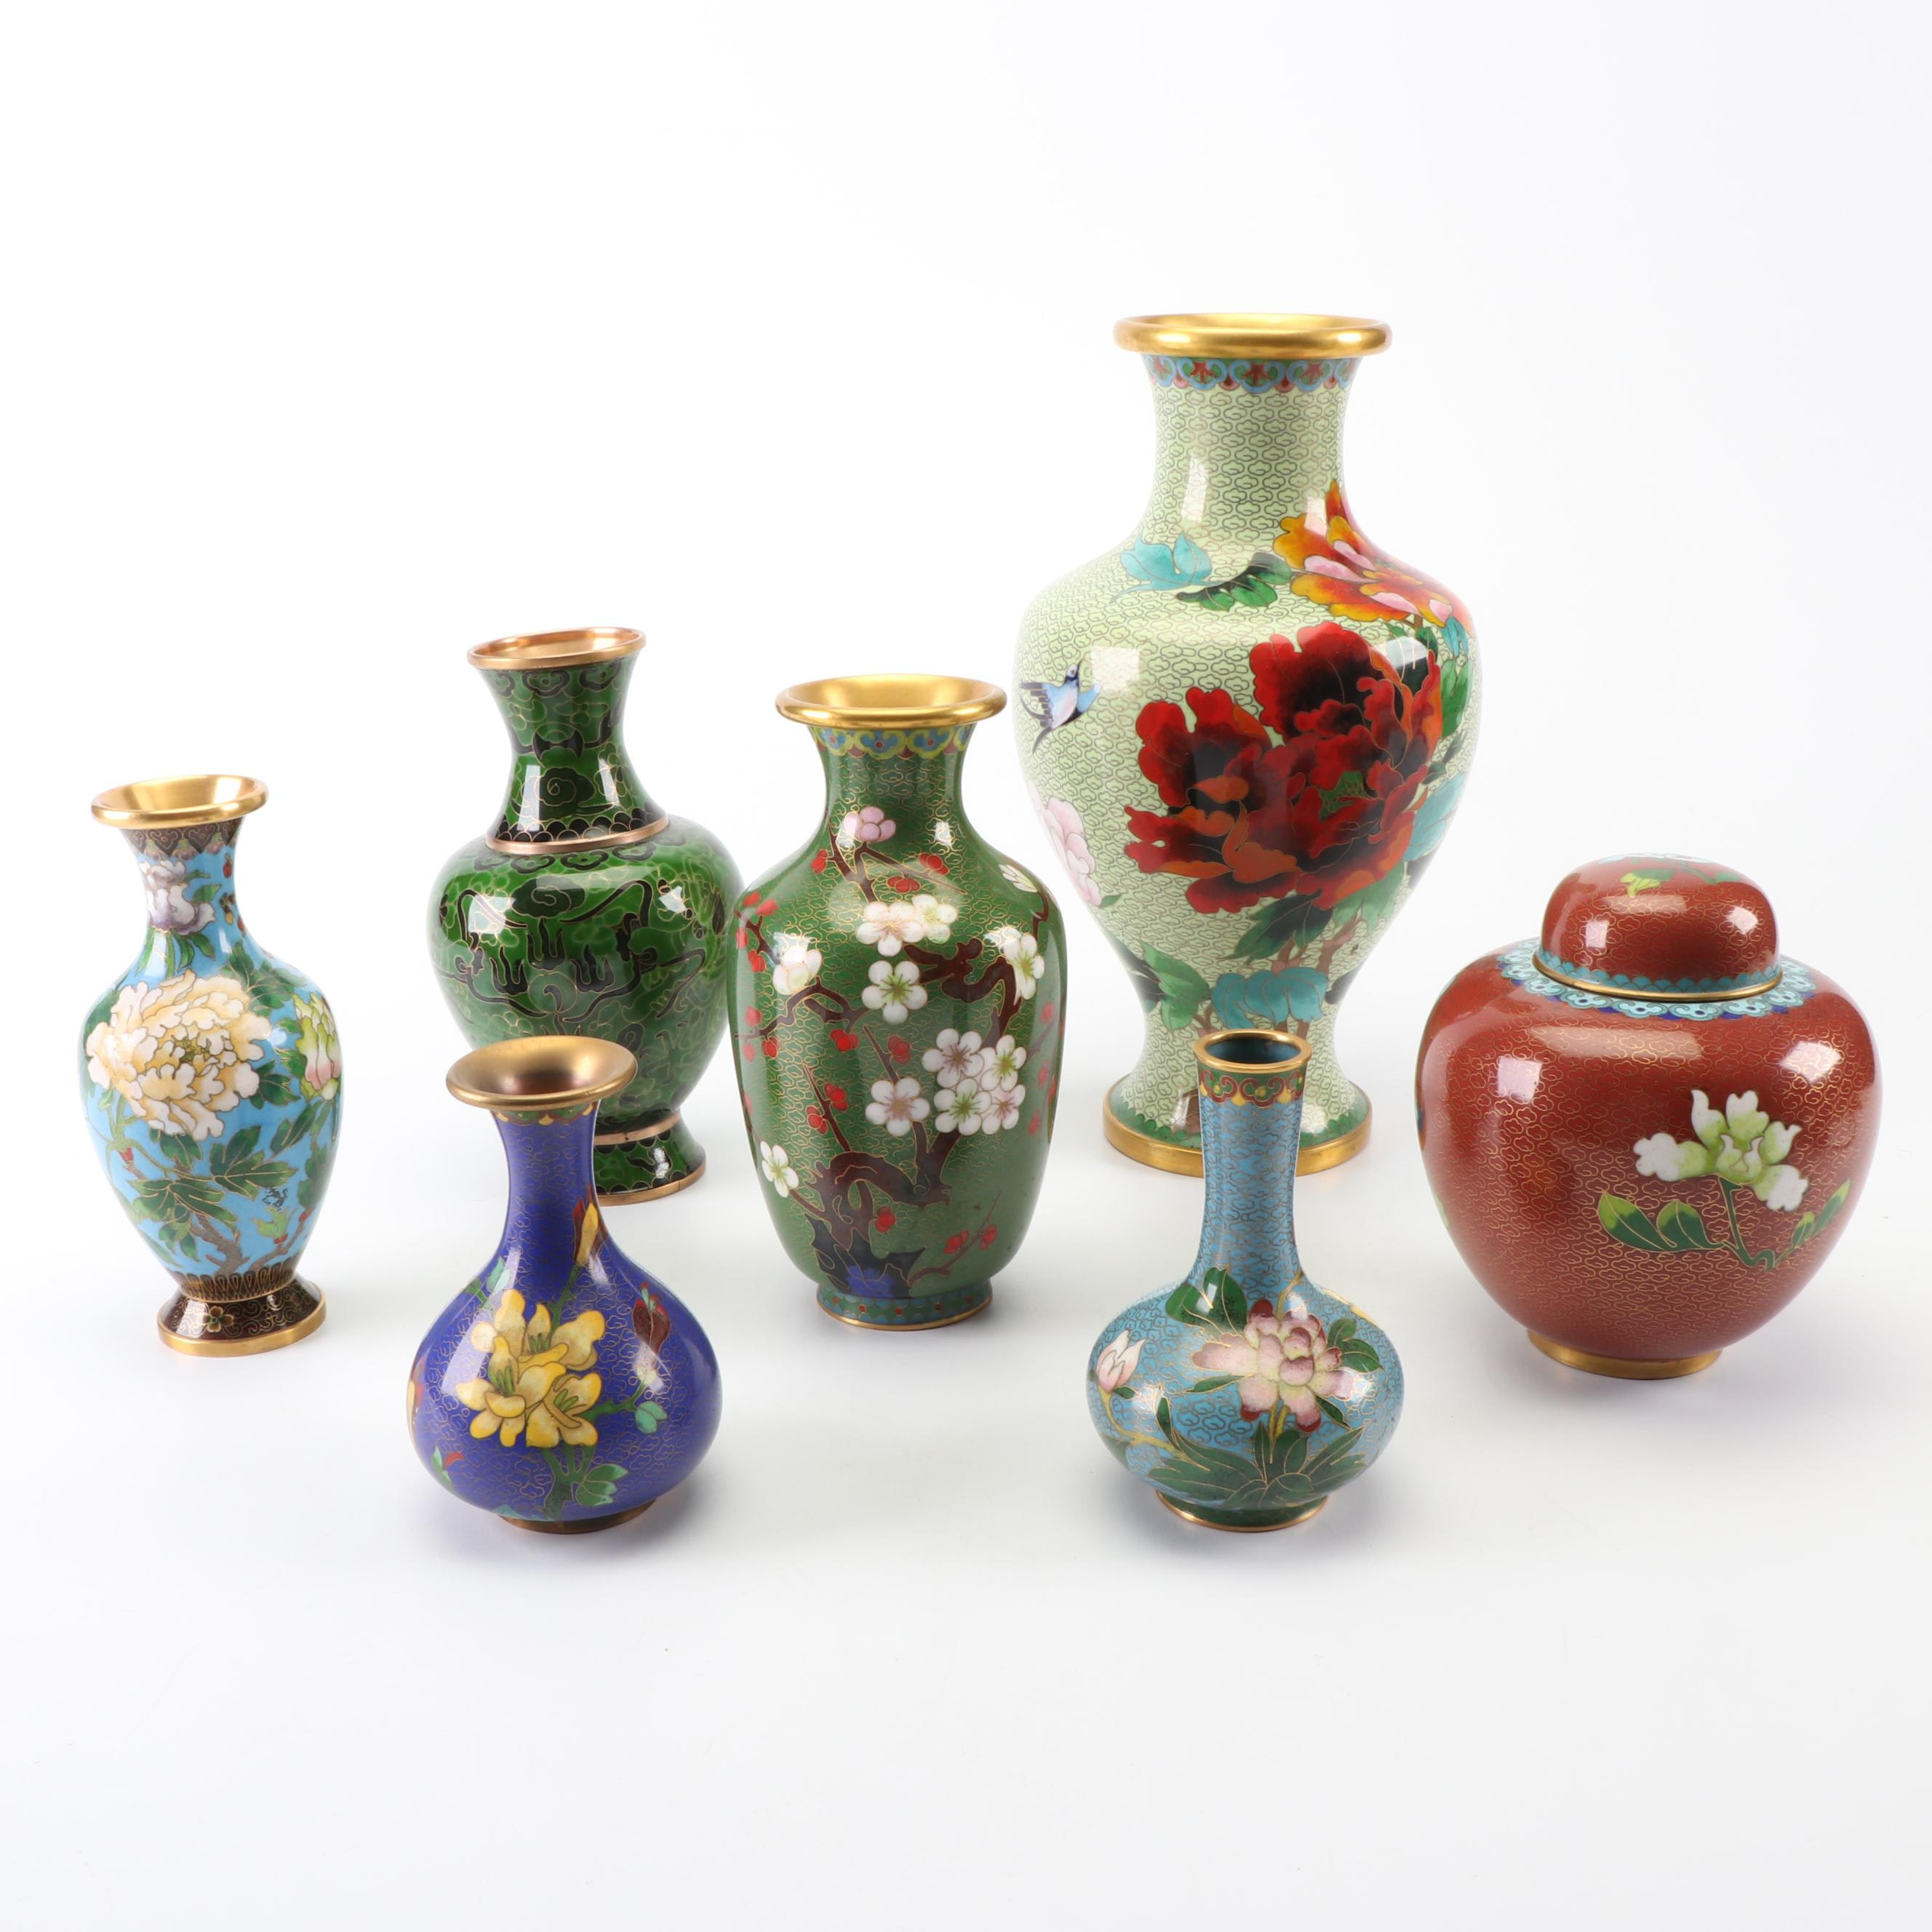 Chinese Cloisonné Vases and Ginger Jar